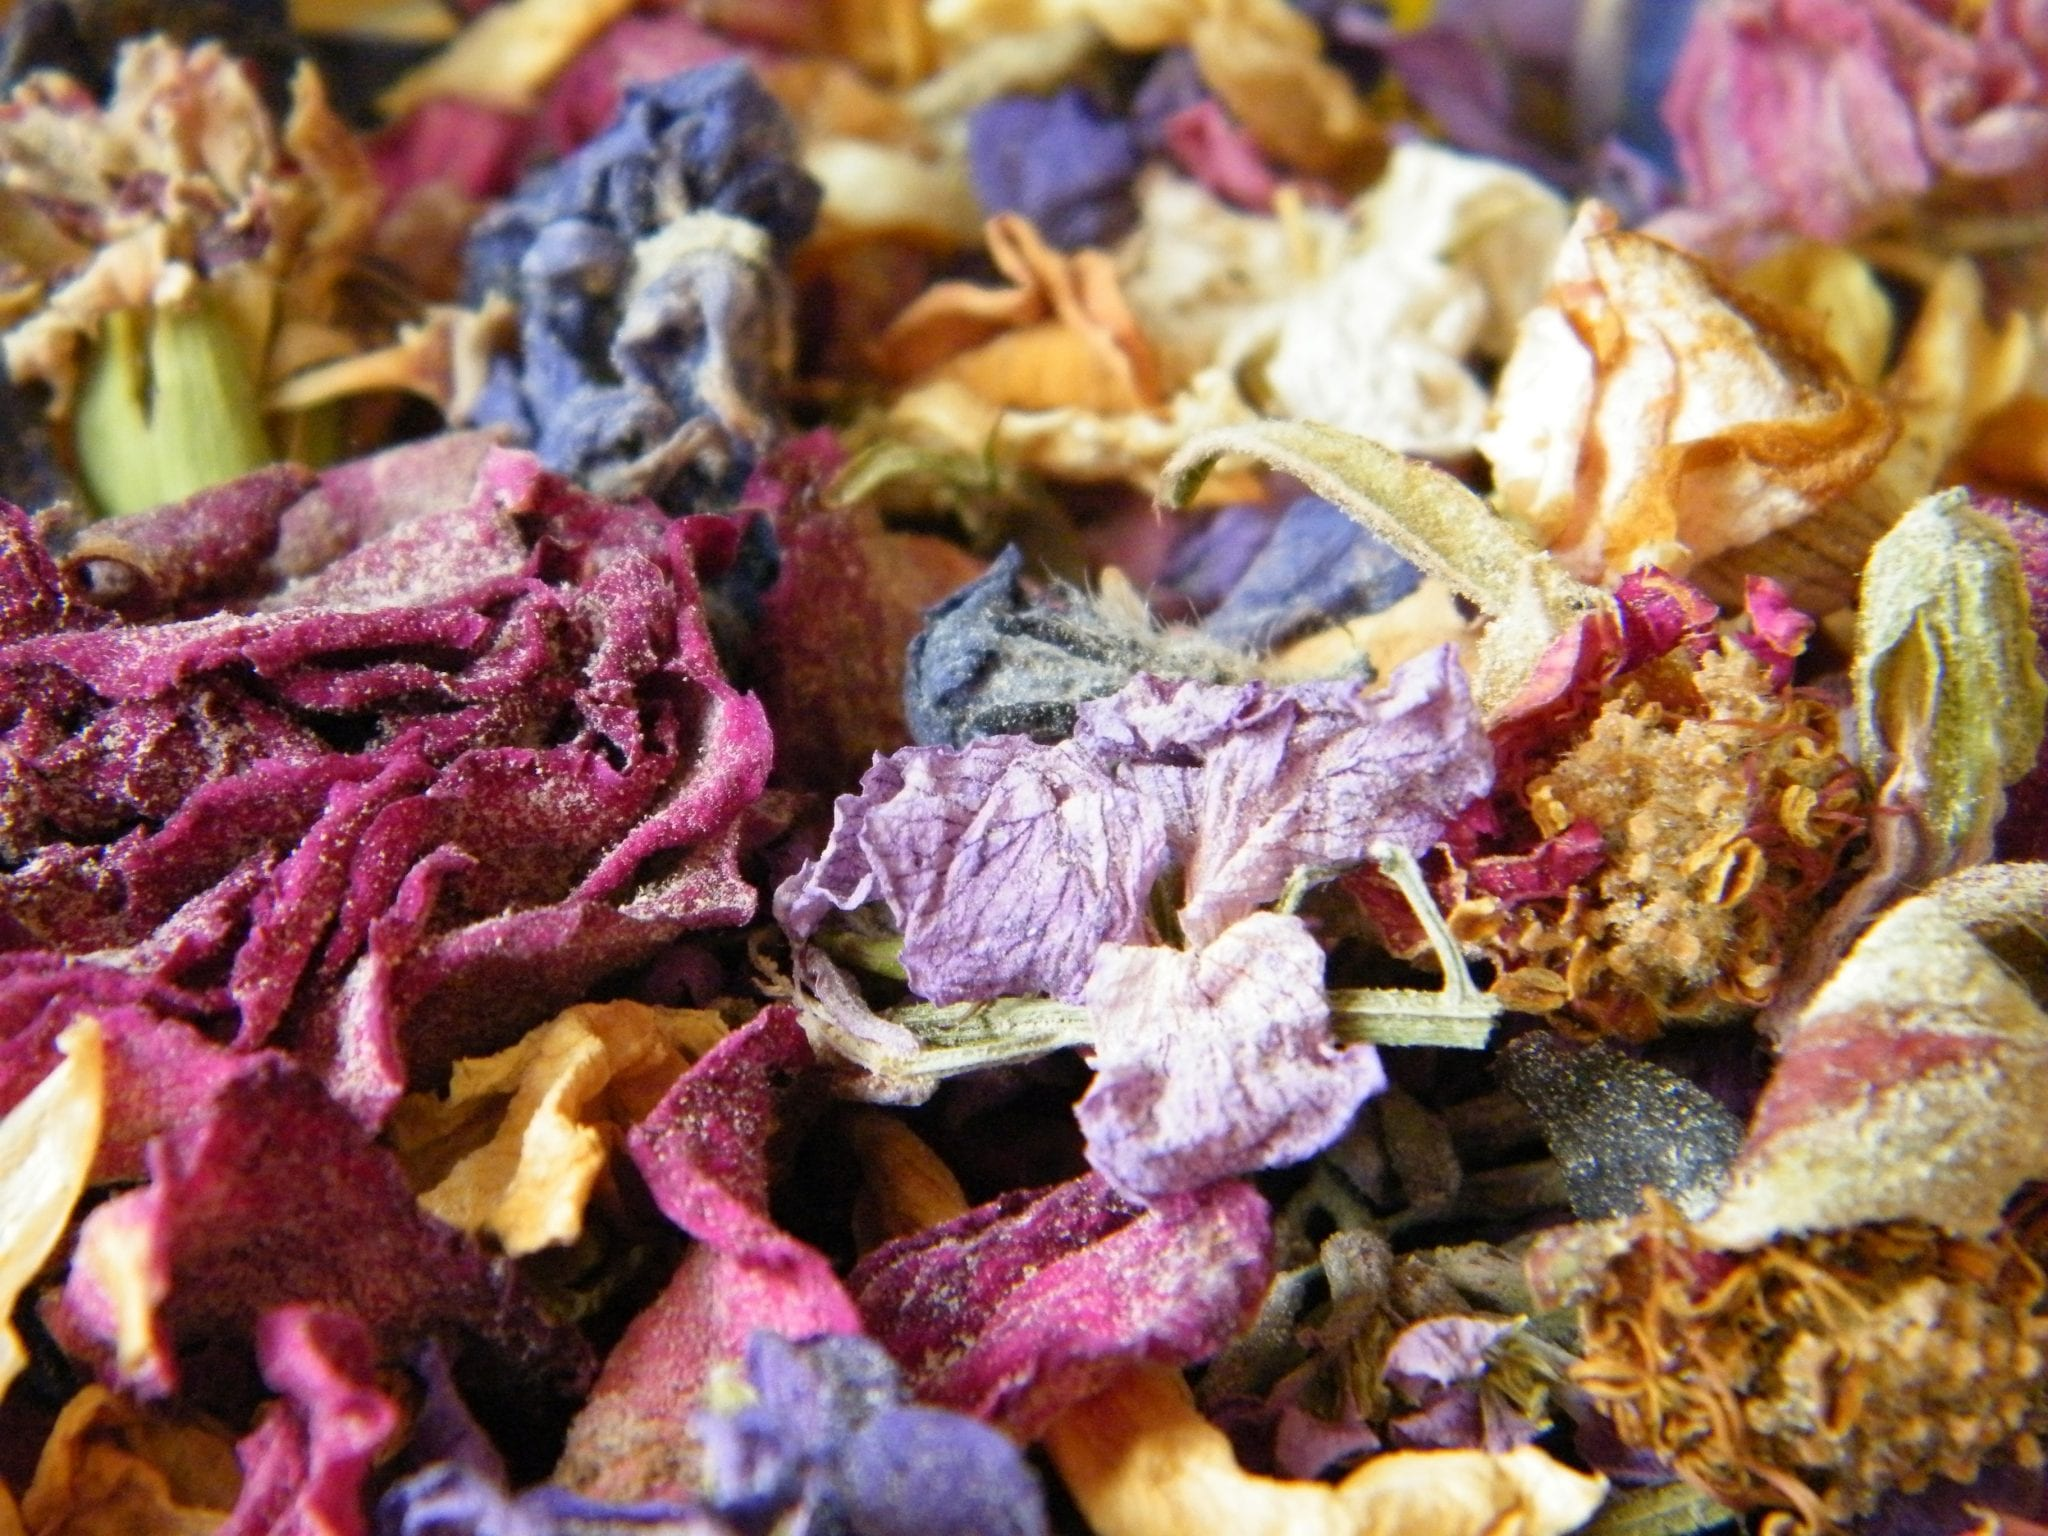 traditional potpourri making with dried petals